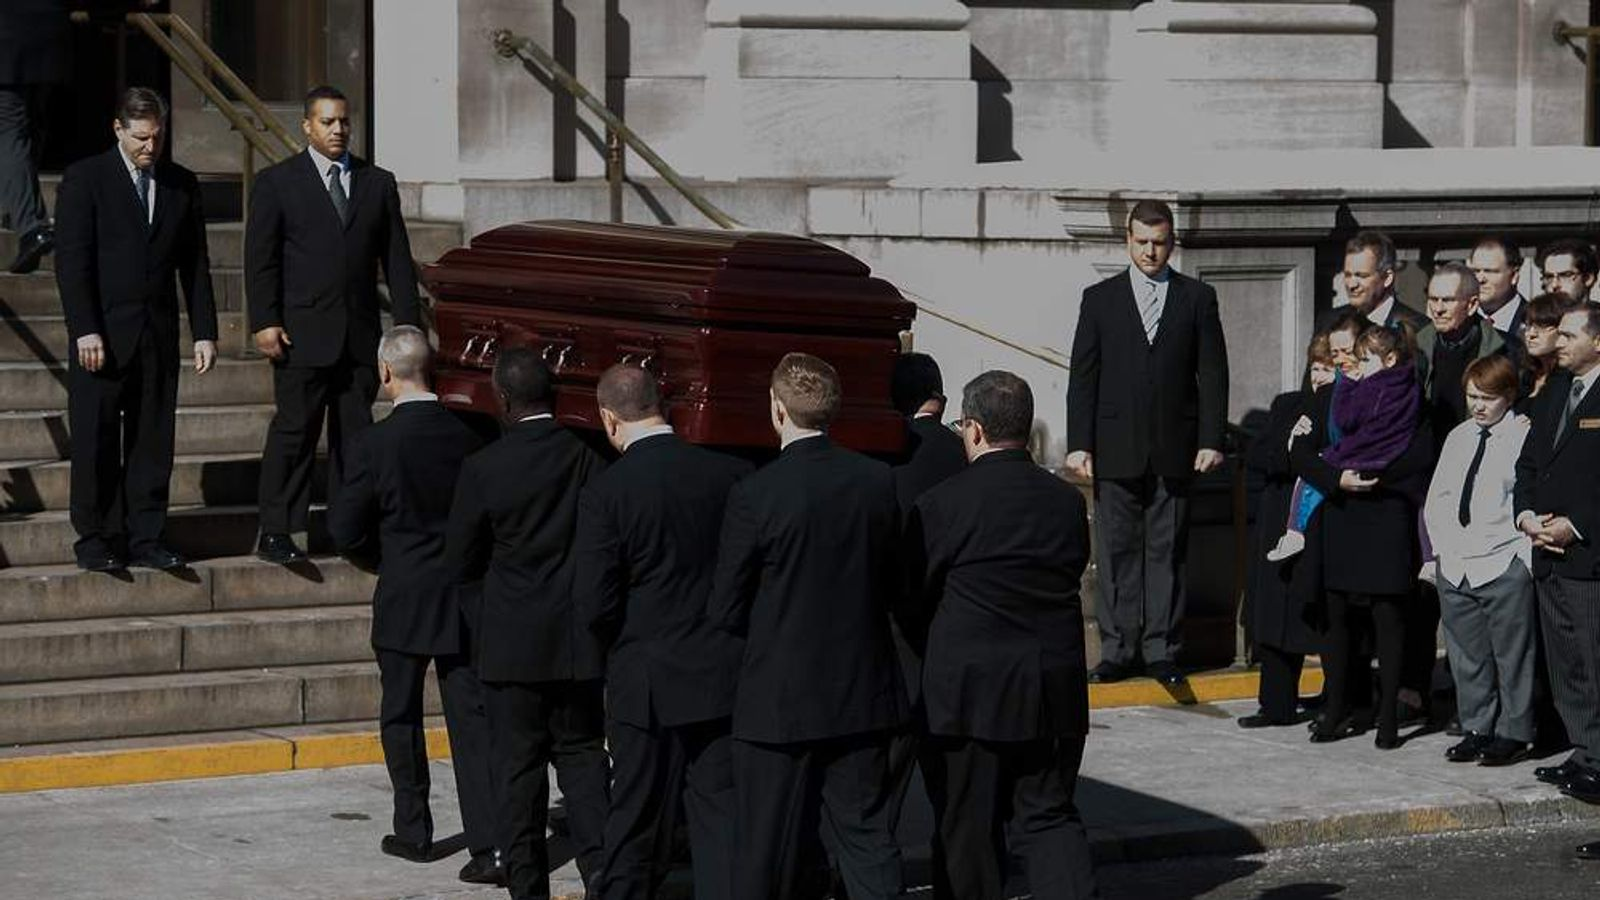 The funeral service for actor Philip Seymour Hoffman was held in New York.